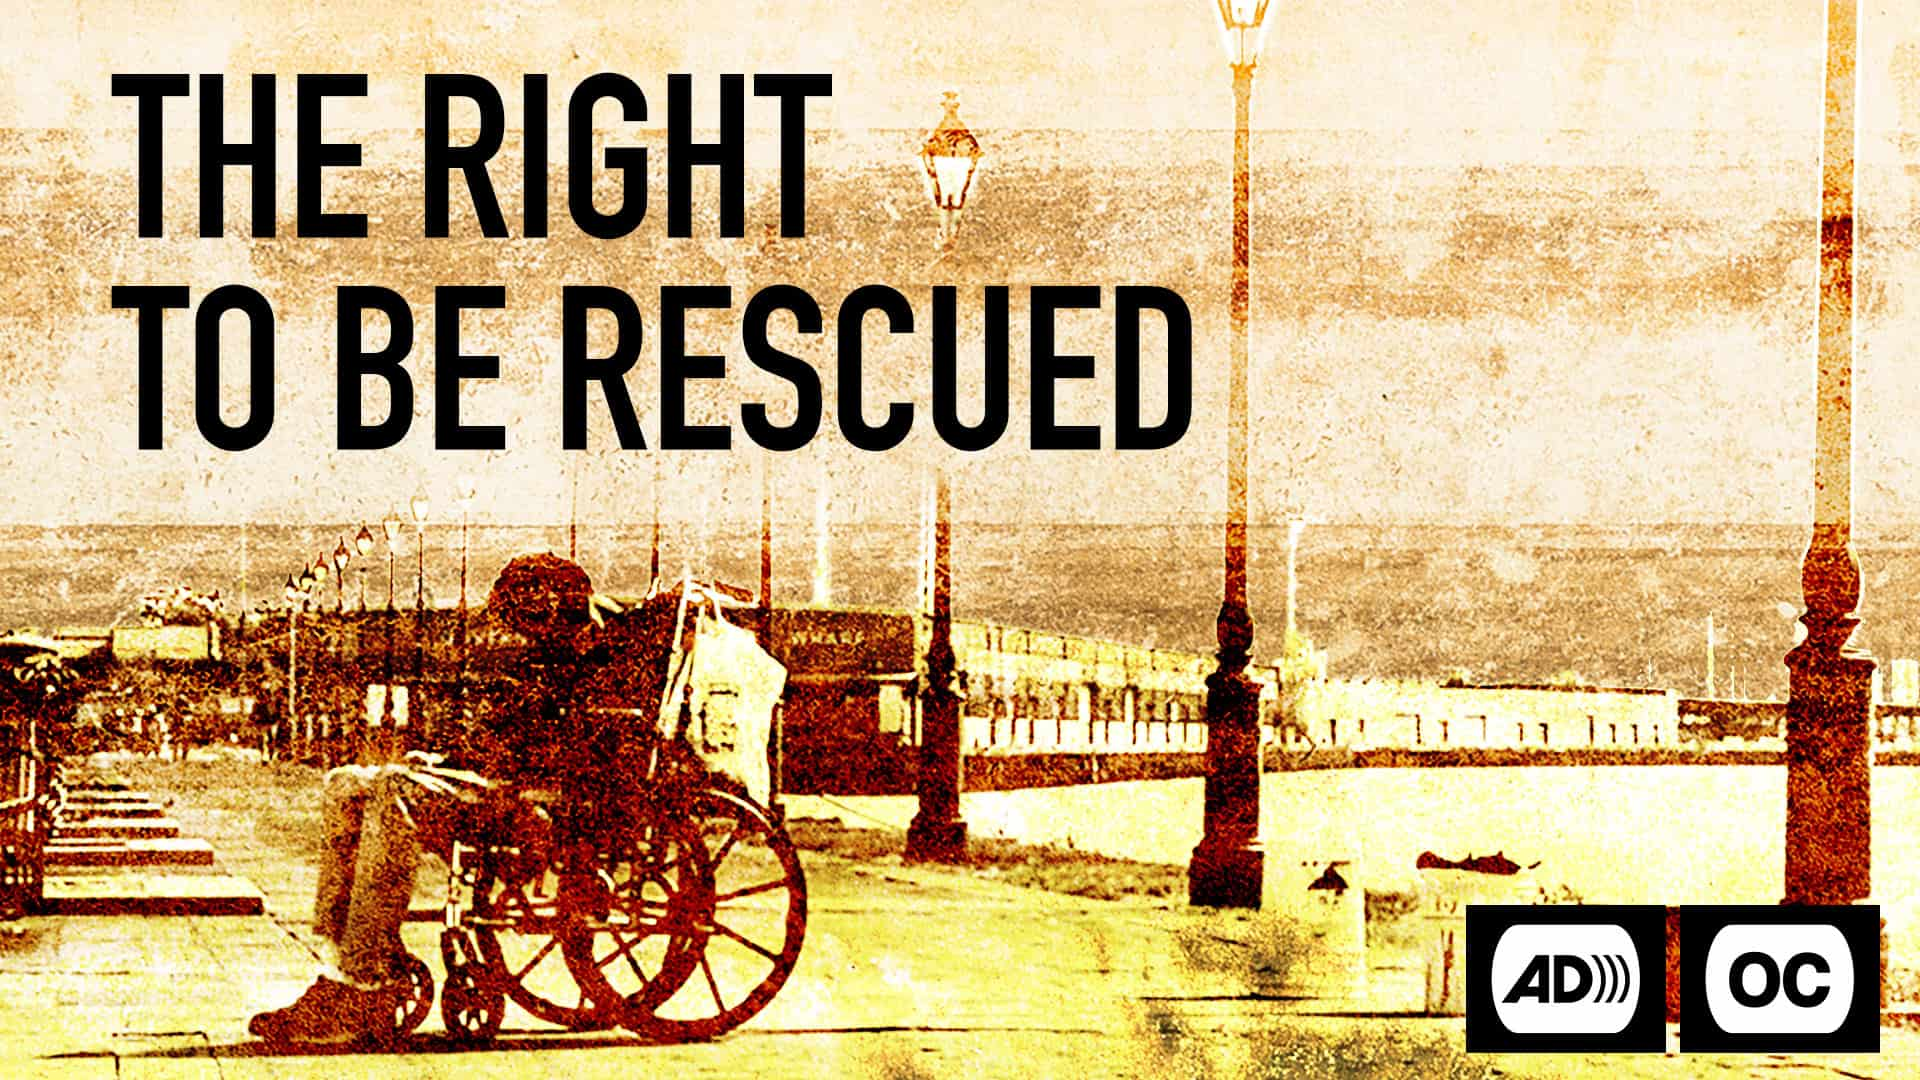 Movie poster for The Right to be Rescued with Audio Description and Open Caption icons. A person in a wheelchair on a pier.